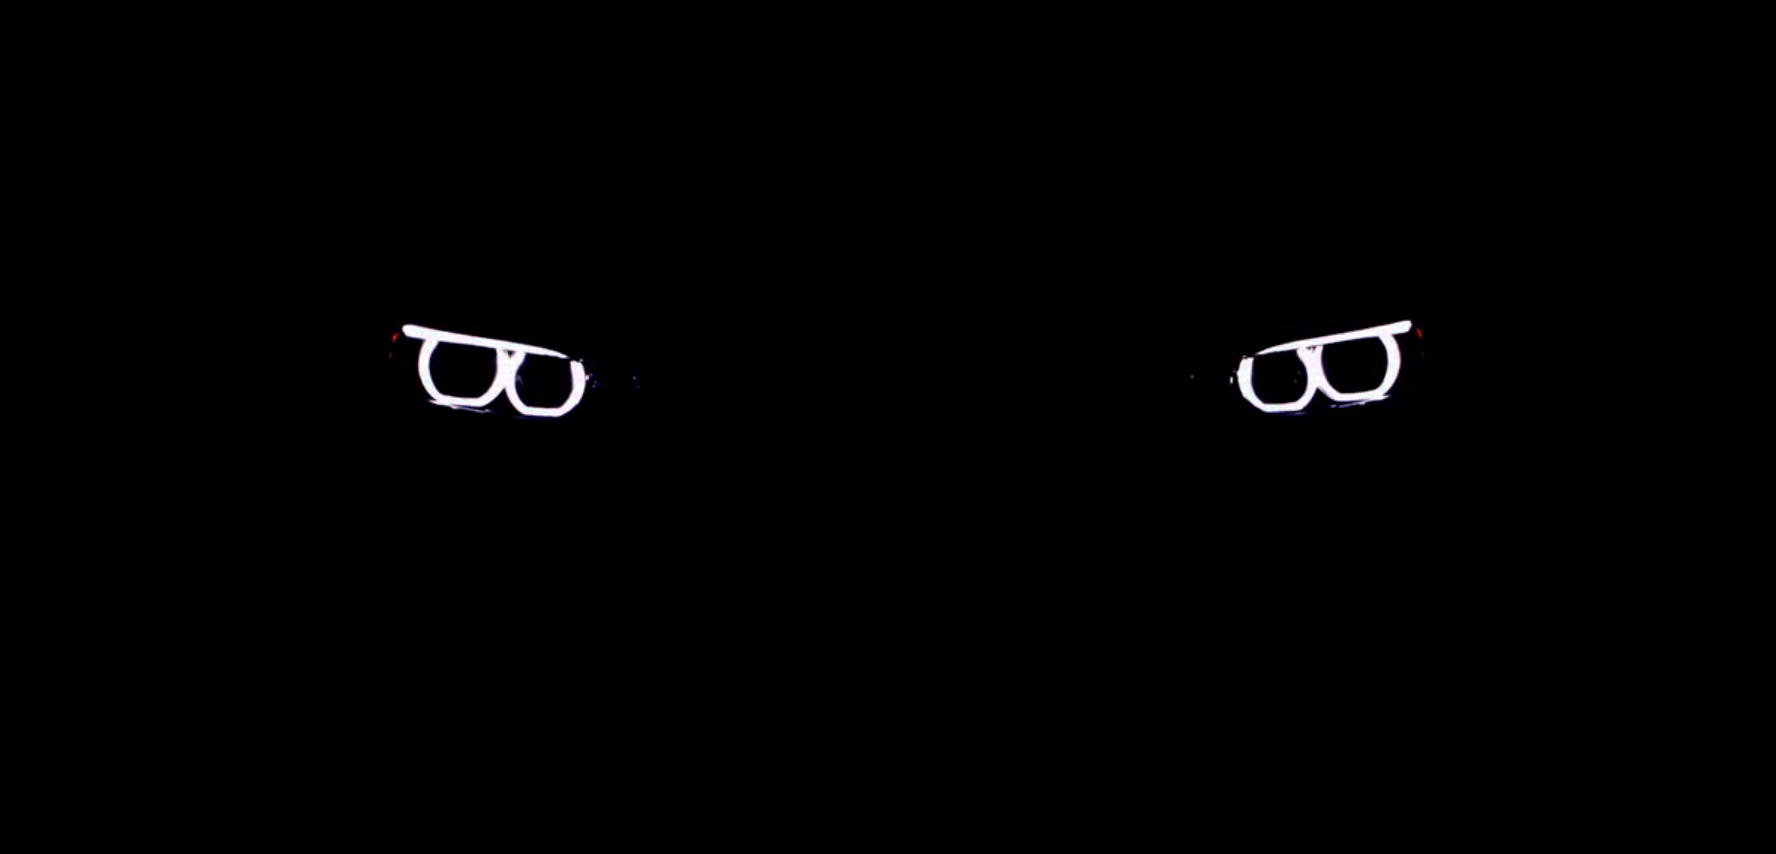 Black and White BMW M3 Logo - BMW M3 and M4 Teased Ahead of Launch - autoevolution